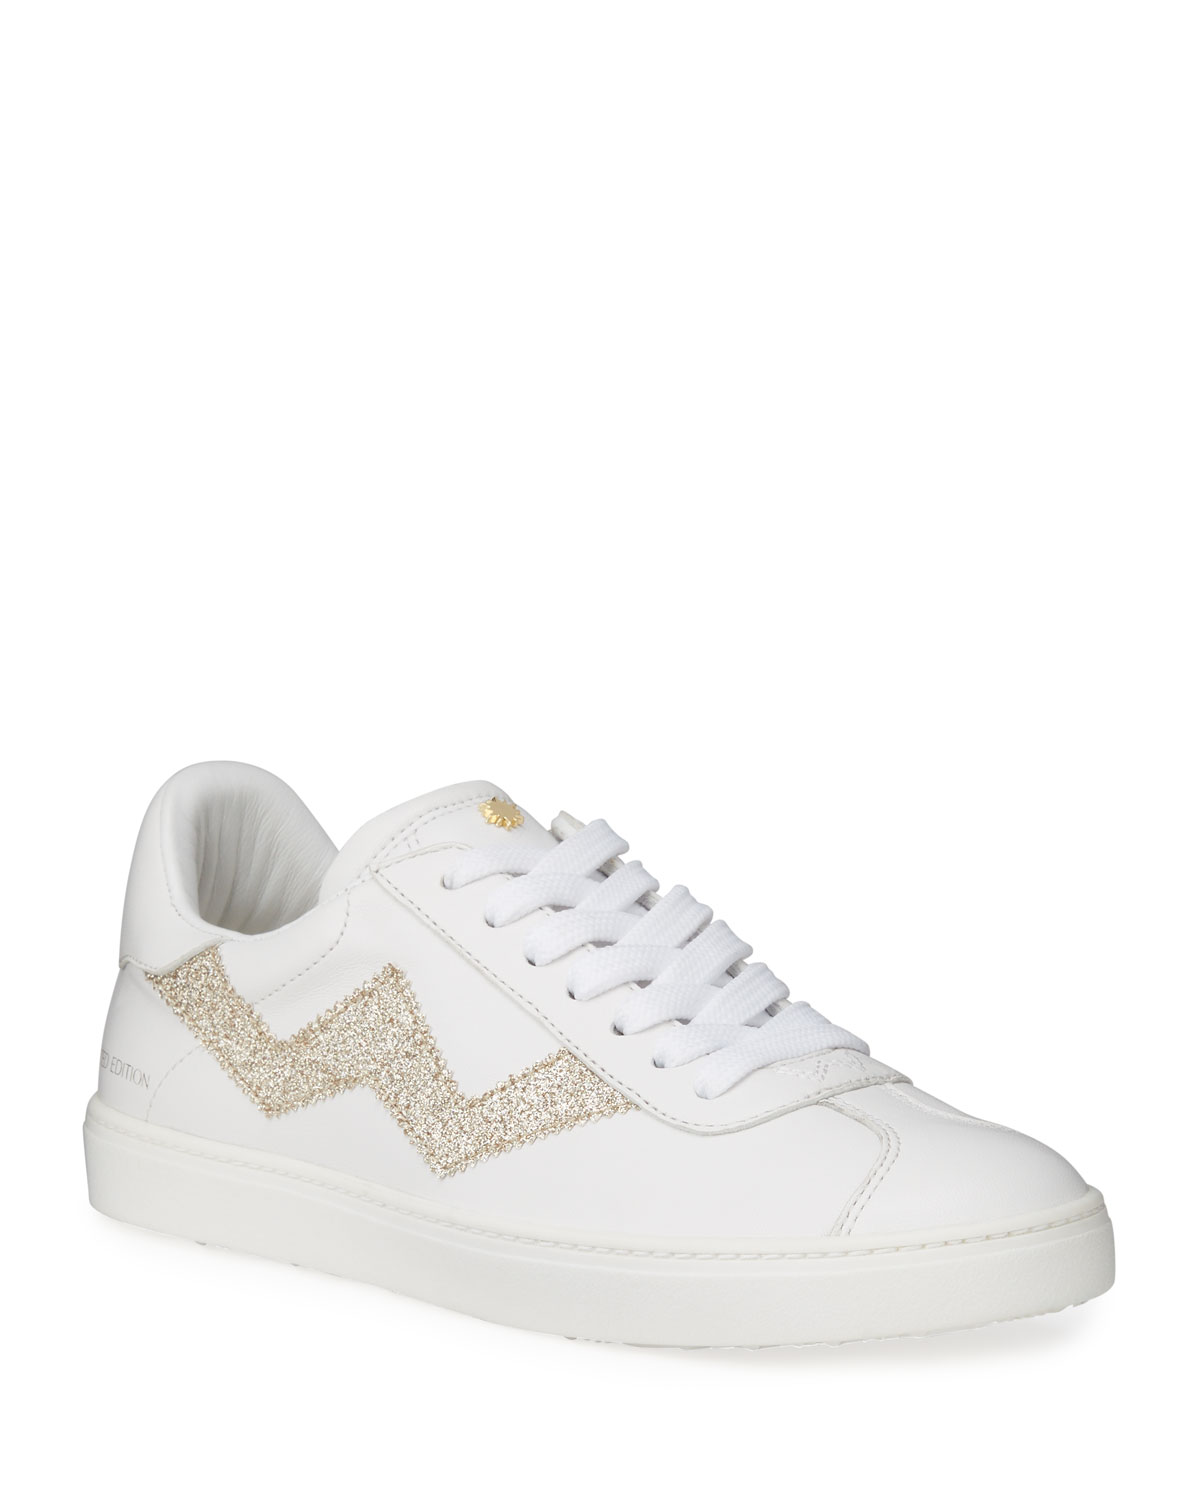 Stuart Weitzman Daryl Leather Low-Top Sneakers with Glitter